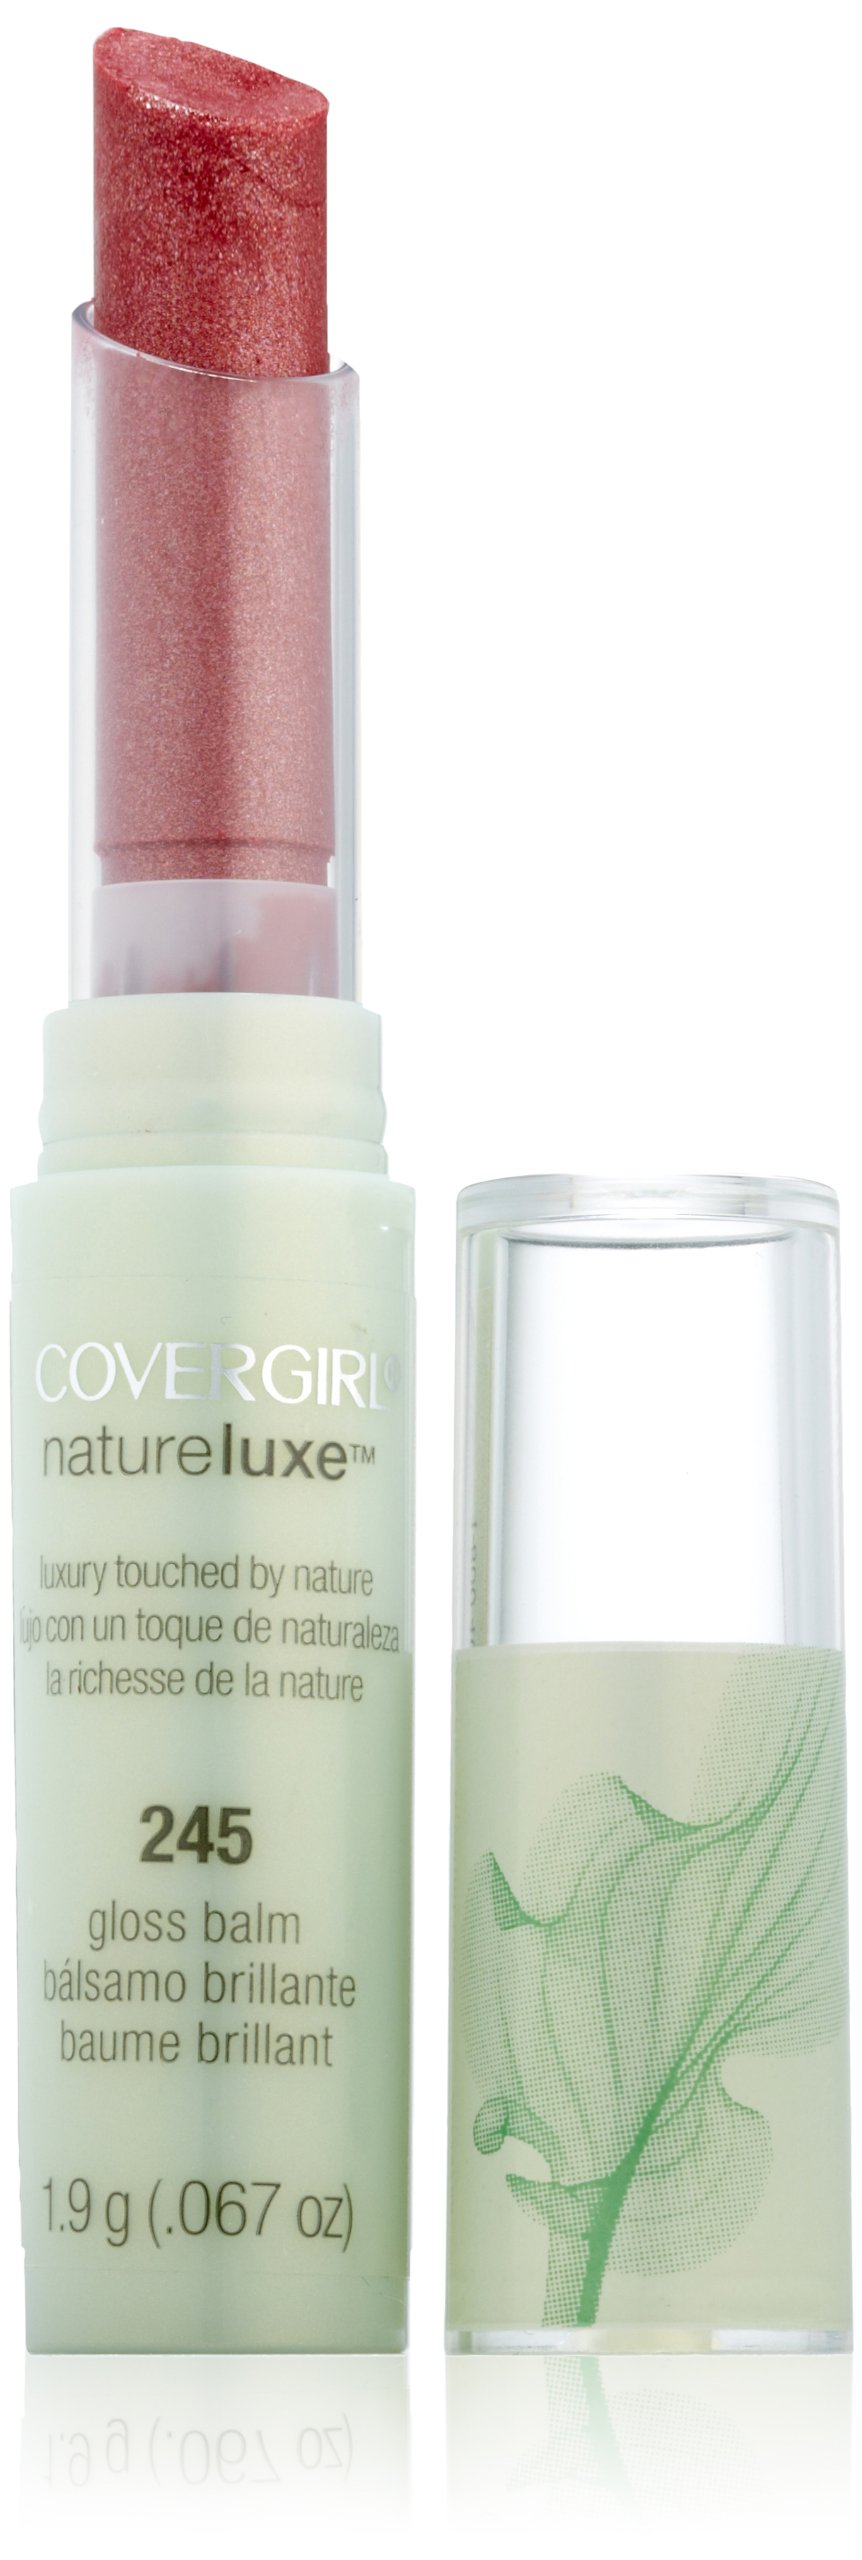 Covergirl Natureluxe Gloss Balm Pinot 245, 0.067-Ounce (Pack of 2)